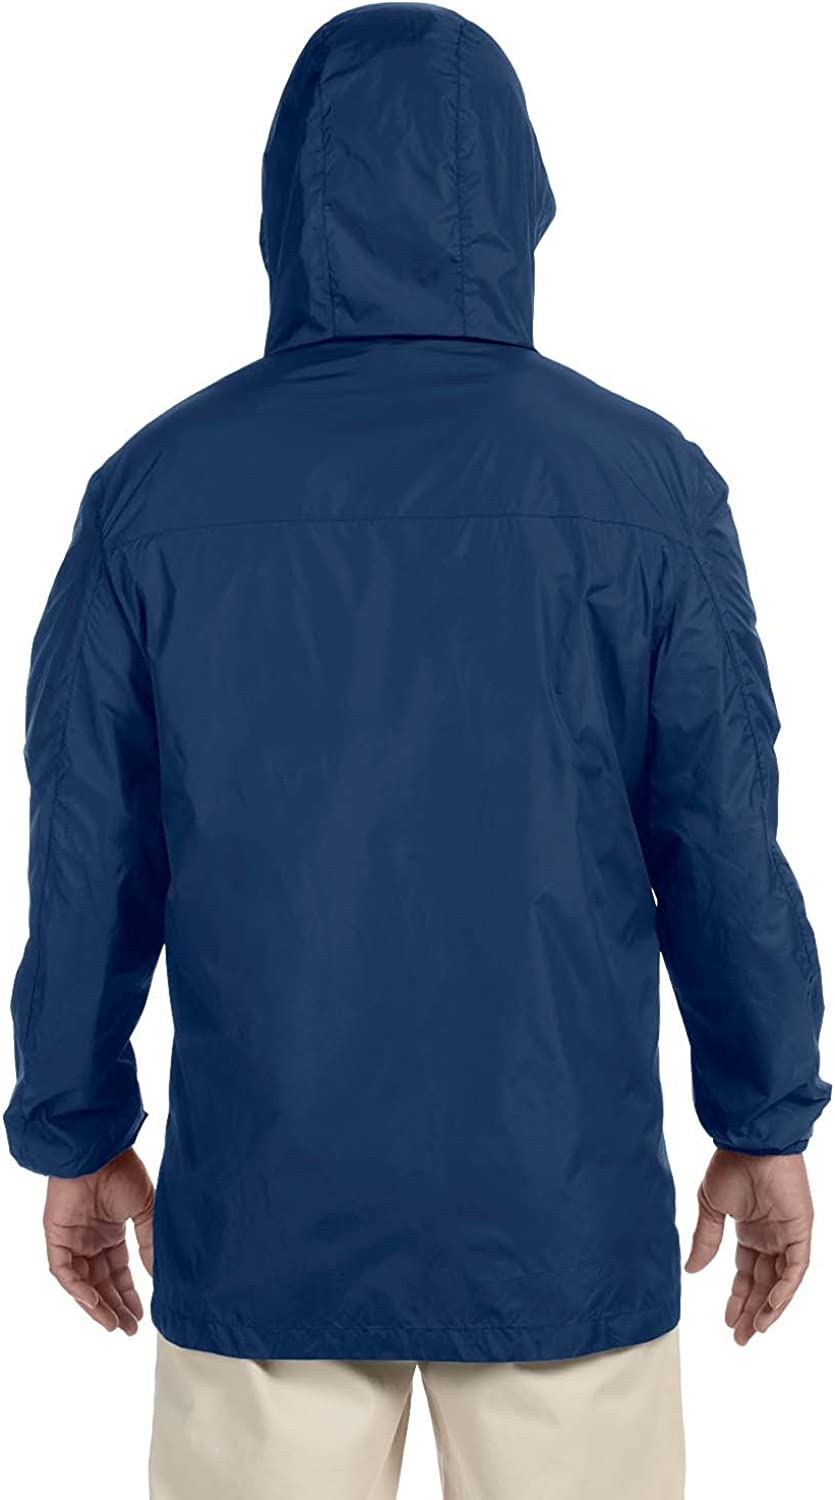 Harriton Mens Water-Resistant Essential Rainwear